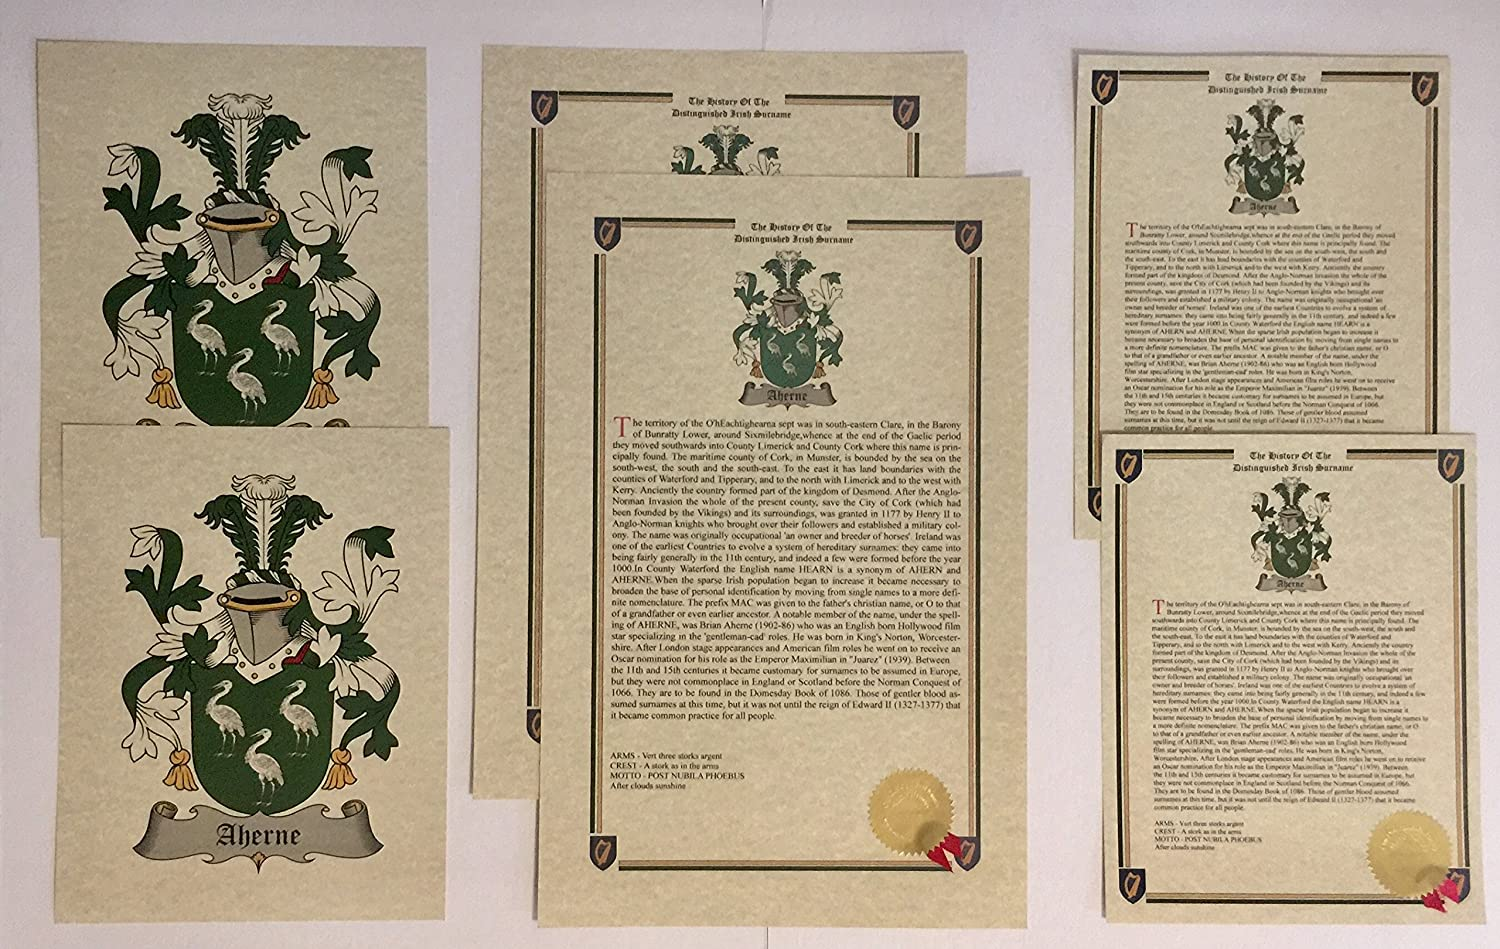 Turco - Last Name History and Coat Max 89% OFF Arms Set of Print Charlotte Mall from Italy